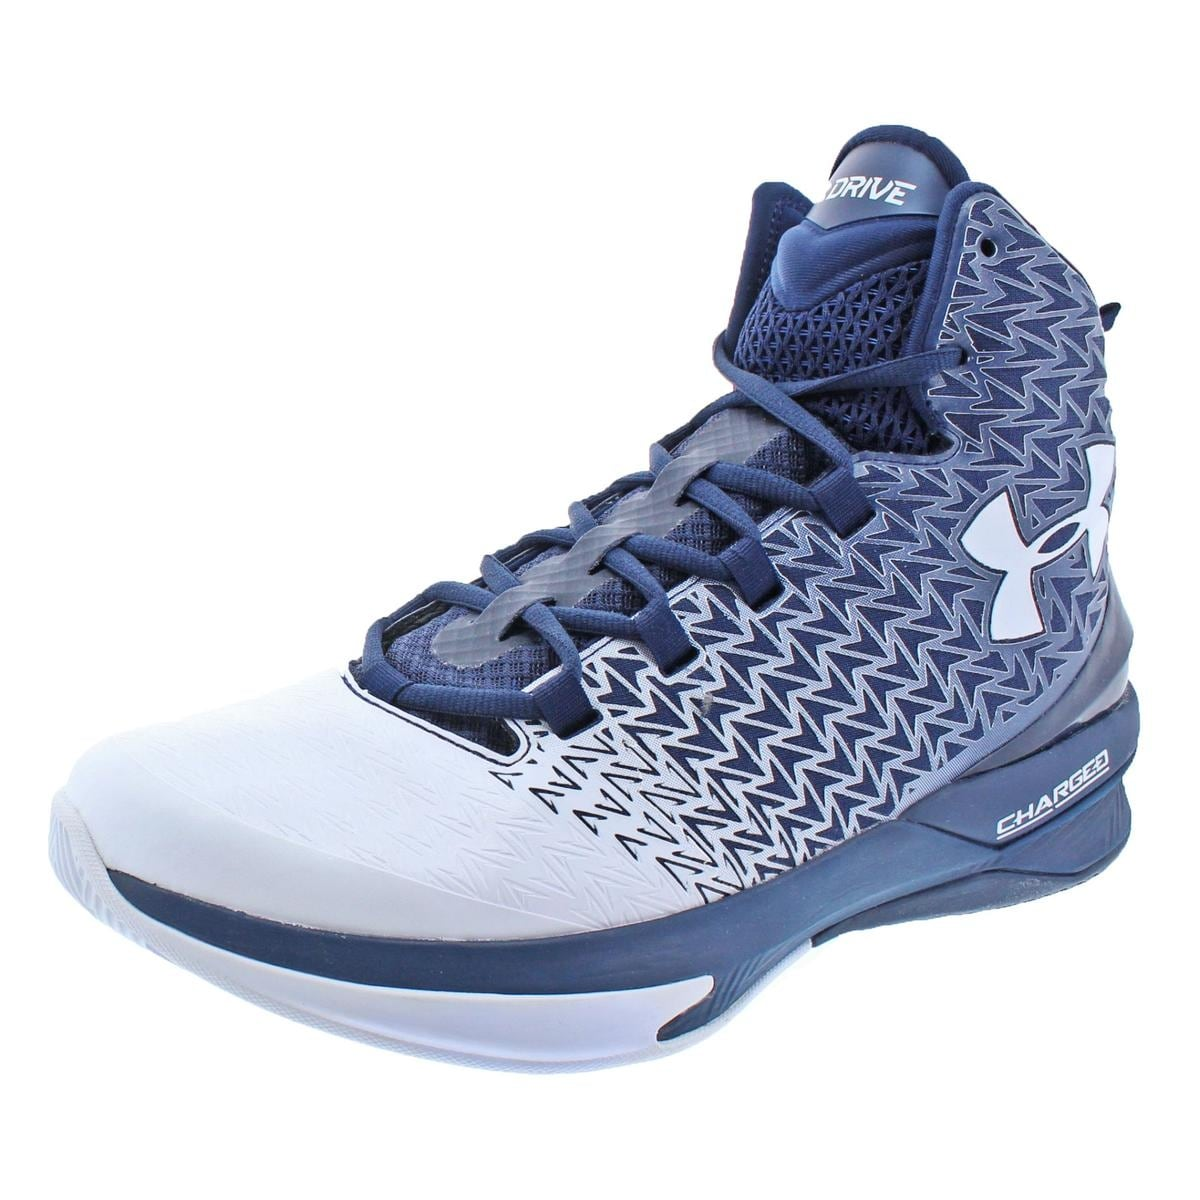 6c2e6e64bf66 ... sale shop under armour mens clutchfit drive 3 basketball shoes high top  charged free shipping today